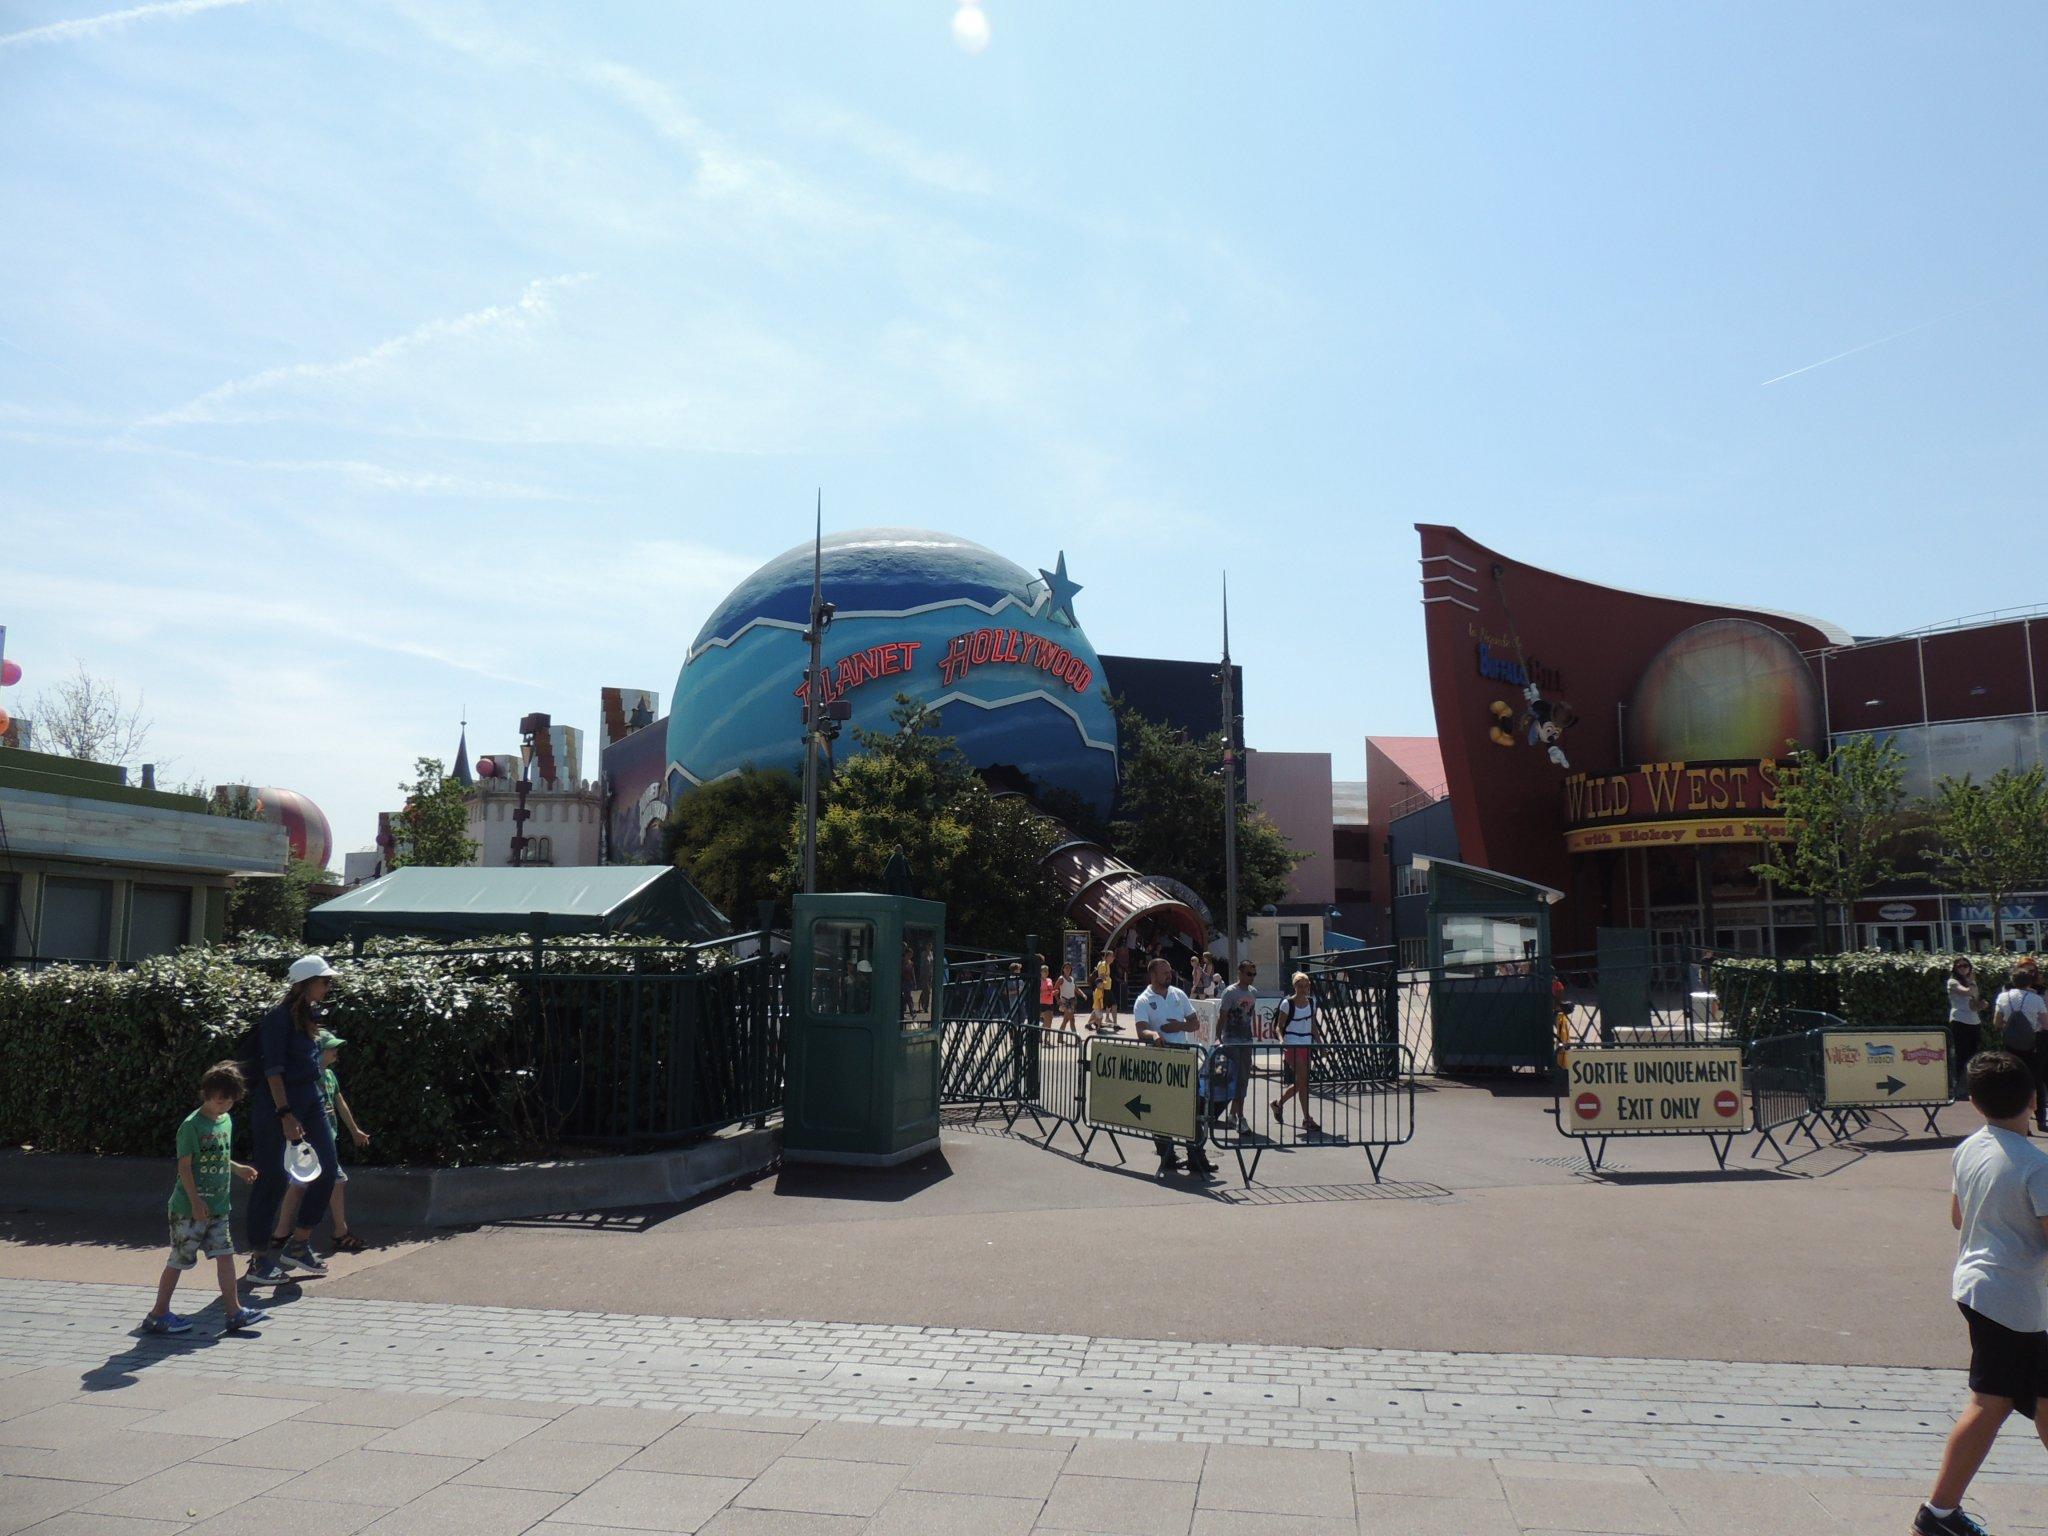 Disneyland planet hollywood